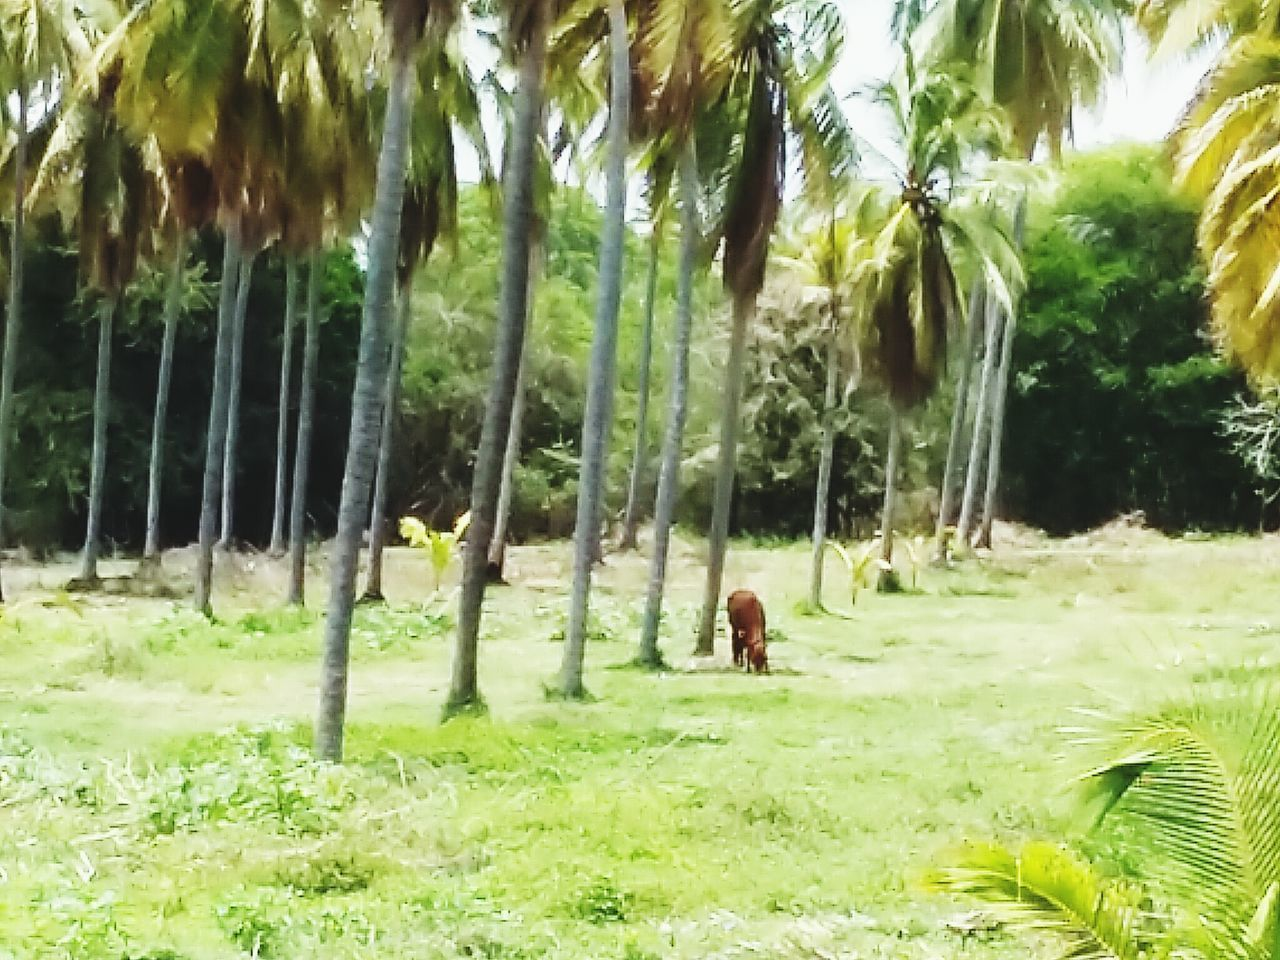 nature, growth, green color, grass, tree, day, outdoors, palm tree, men, real people, beauty in nature, people